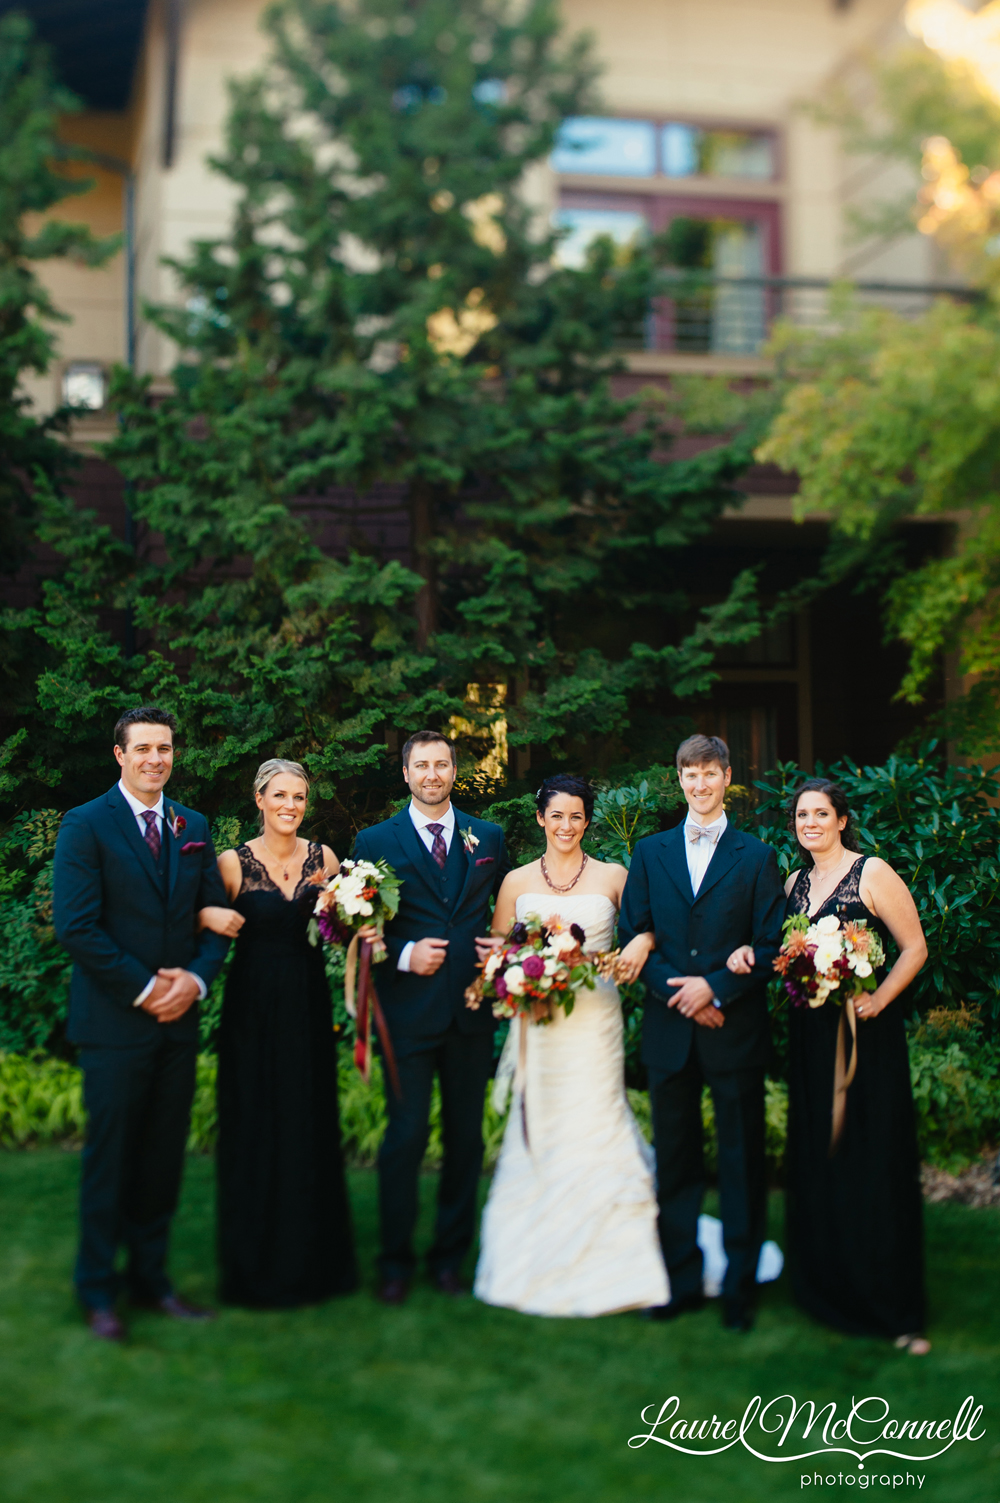 Striking bridal party portrait at Willow's Lodge autumn wedding by Laurel McConnell Photography.